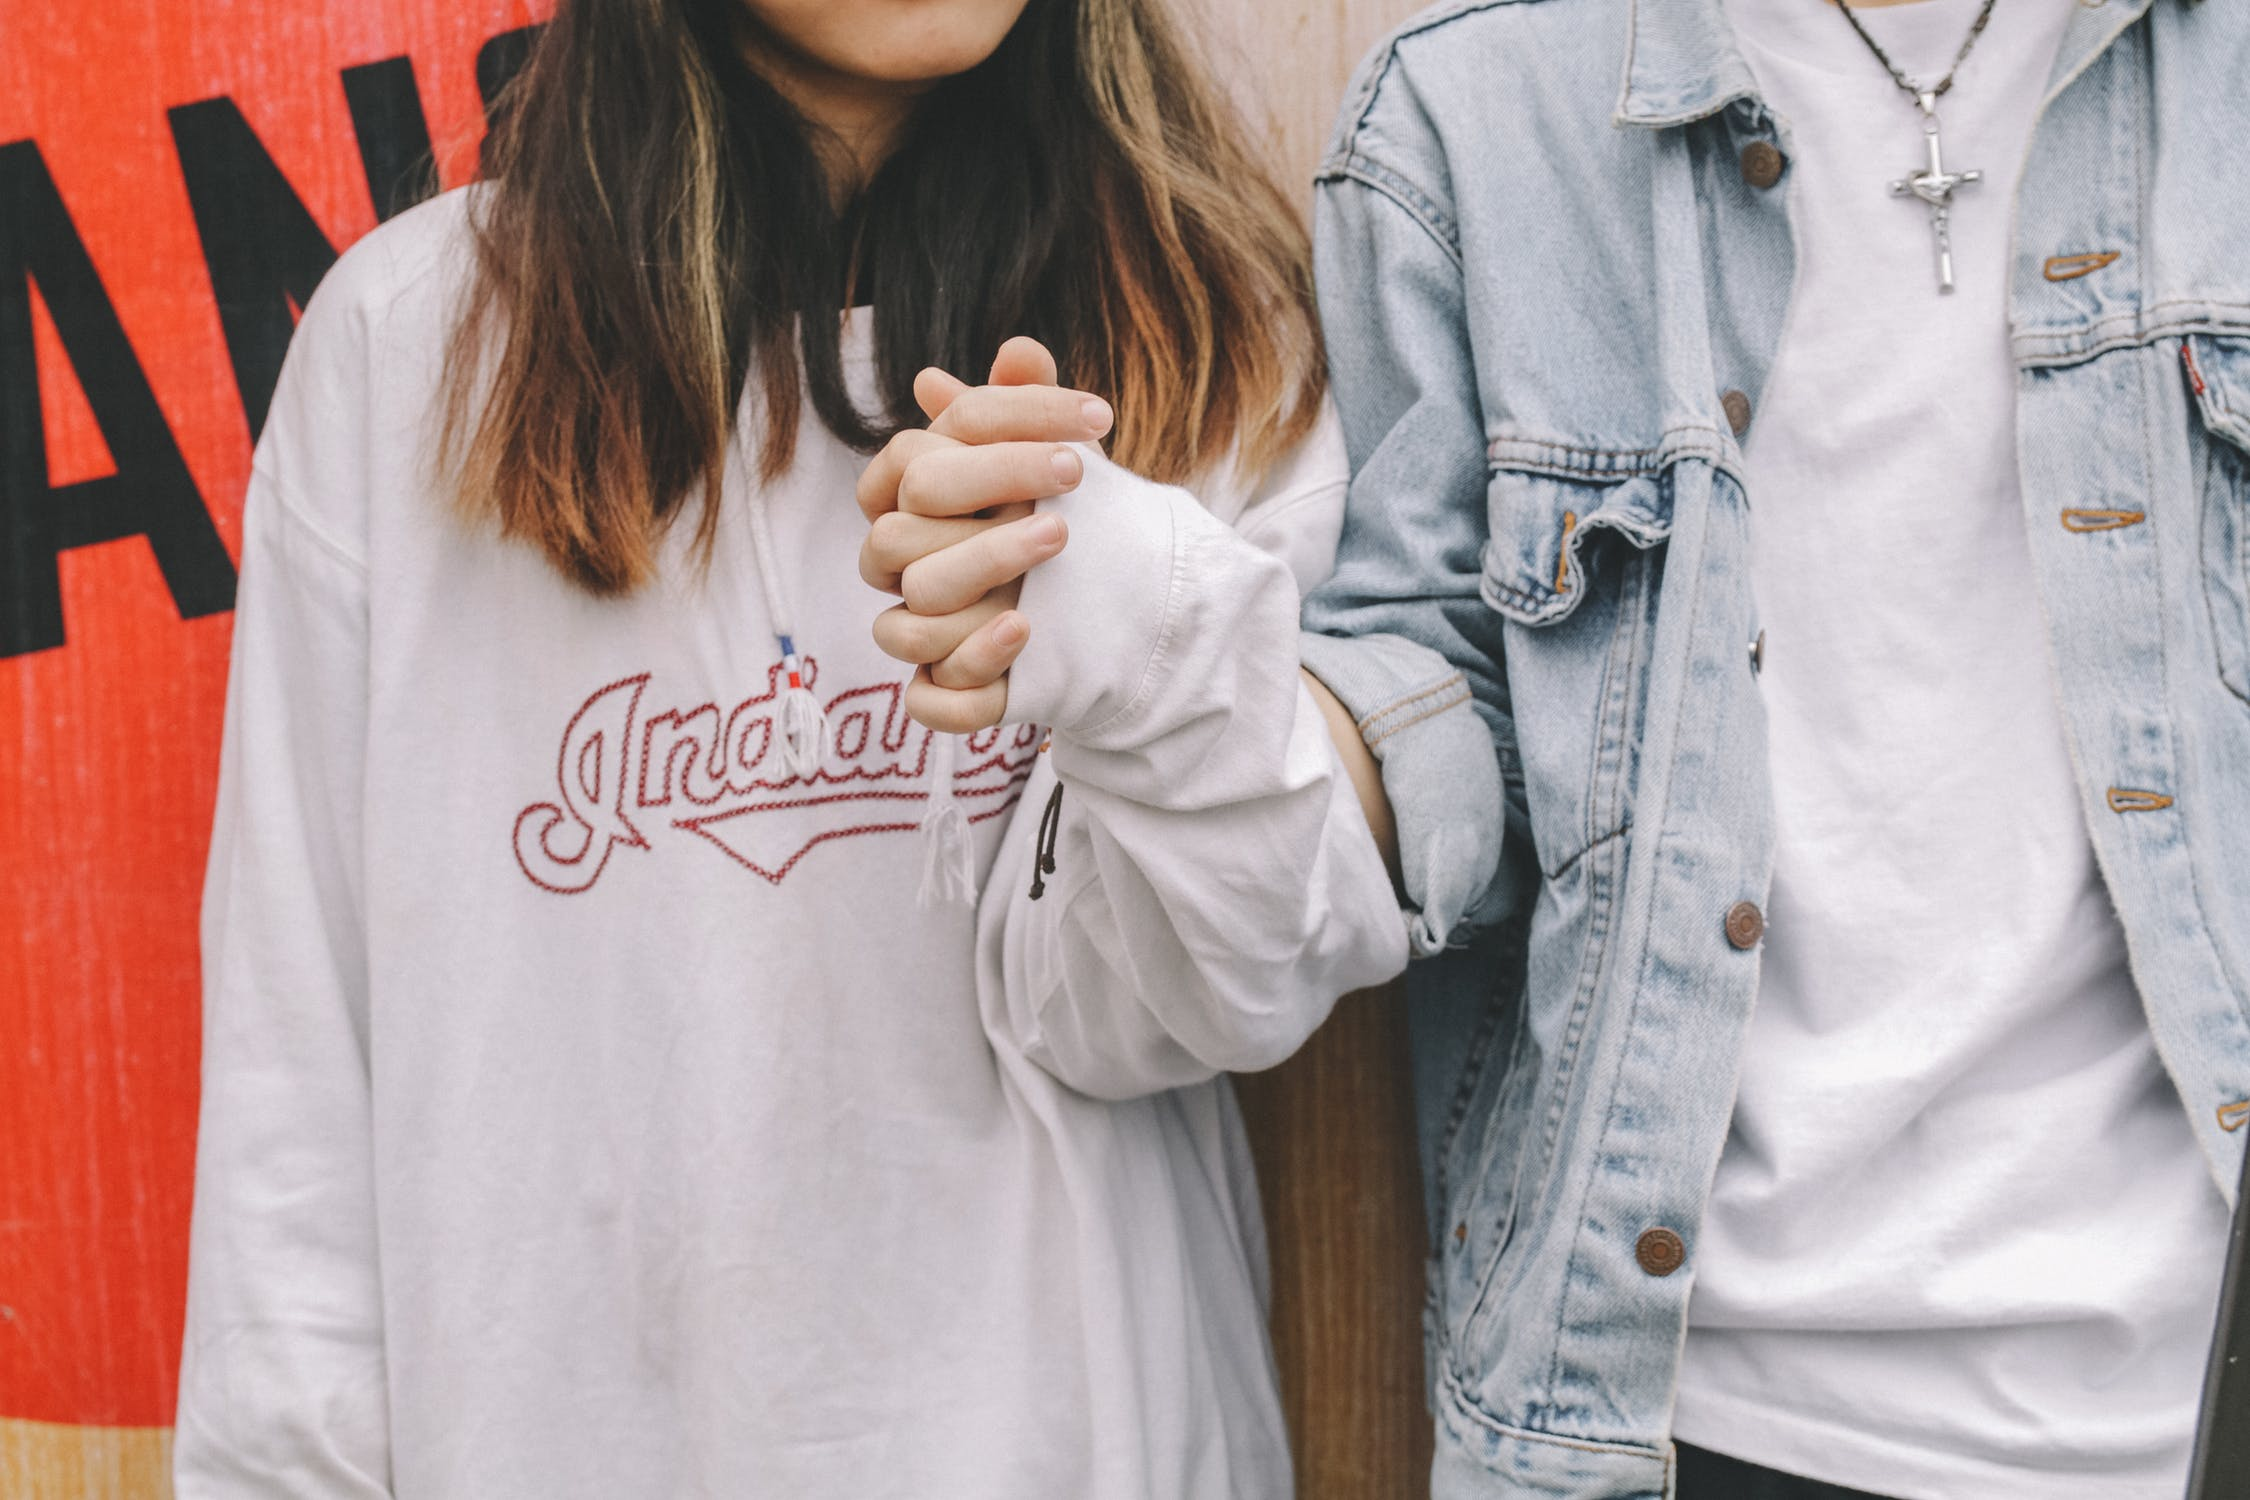 10 Couple Goals We Actually Need in Our Relationships